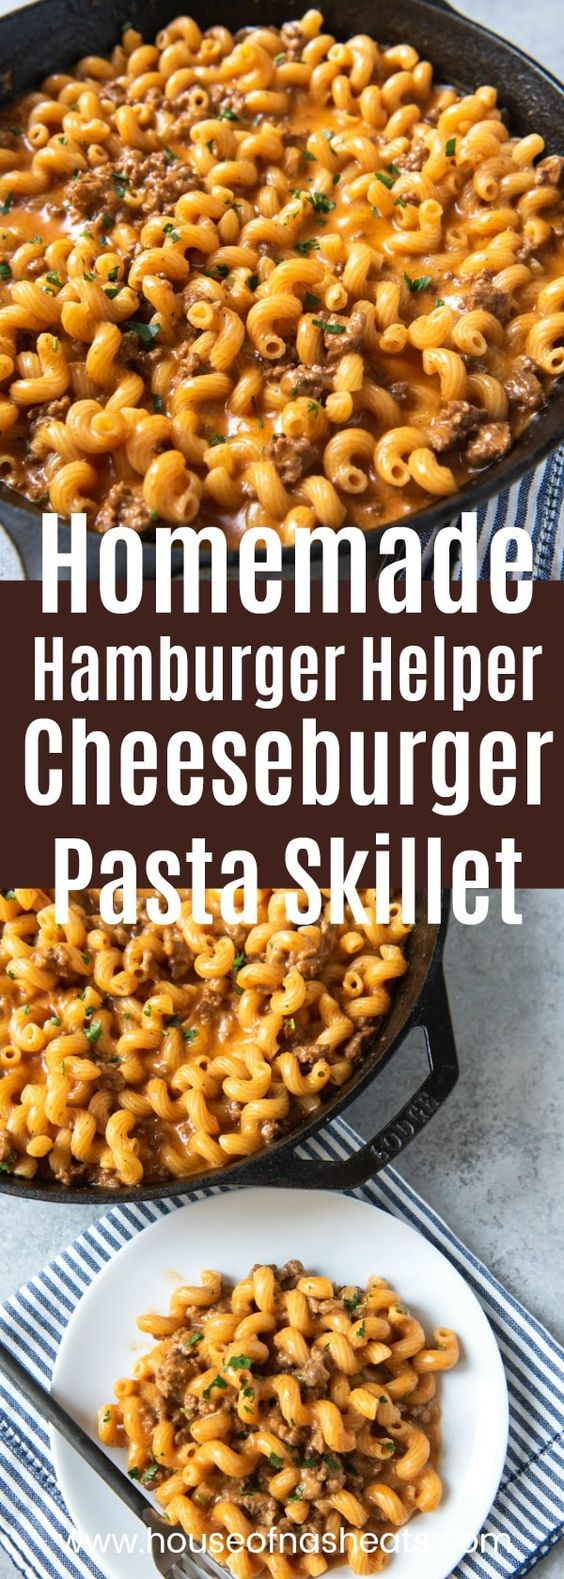 HOMEMADE HAMBURGER HELPER CHEESEBURGER PASTA SKILLET #recipes #pastarecipes #easypastarecipes #food #foodporn #healthy #yummy #instafood #foodie #delicious #dinner #breakfast #dessert #lunch #vegan #cake #eatclean #homemade #diet #healthyfood #cleaneating #foodstagram